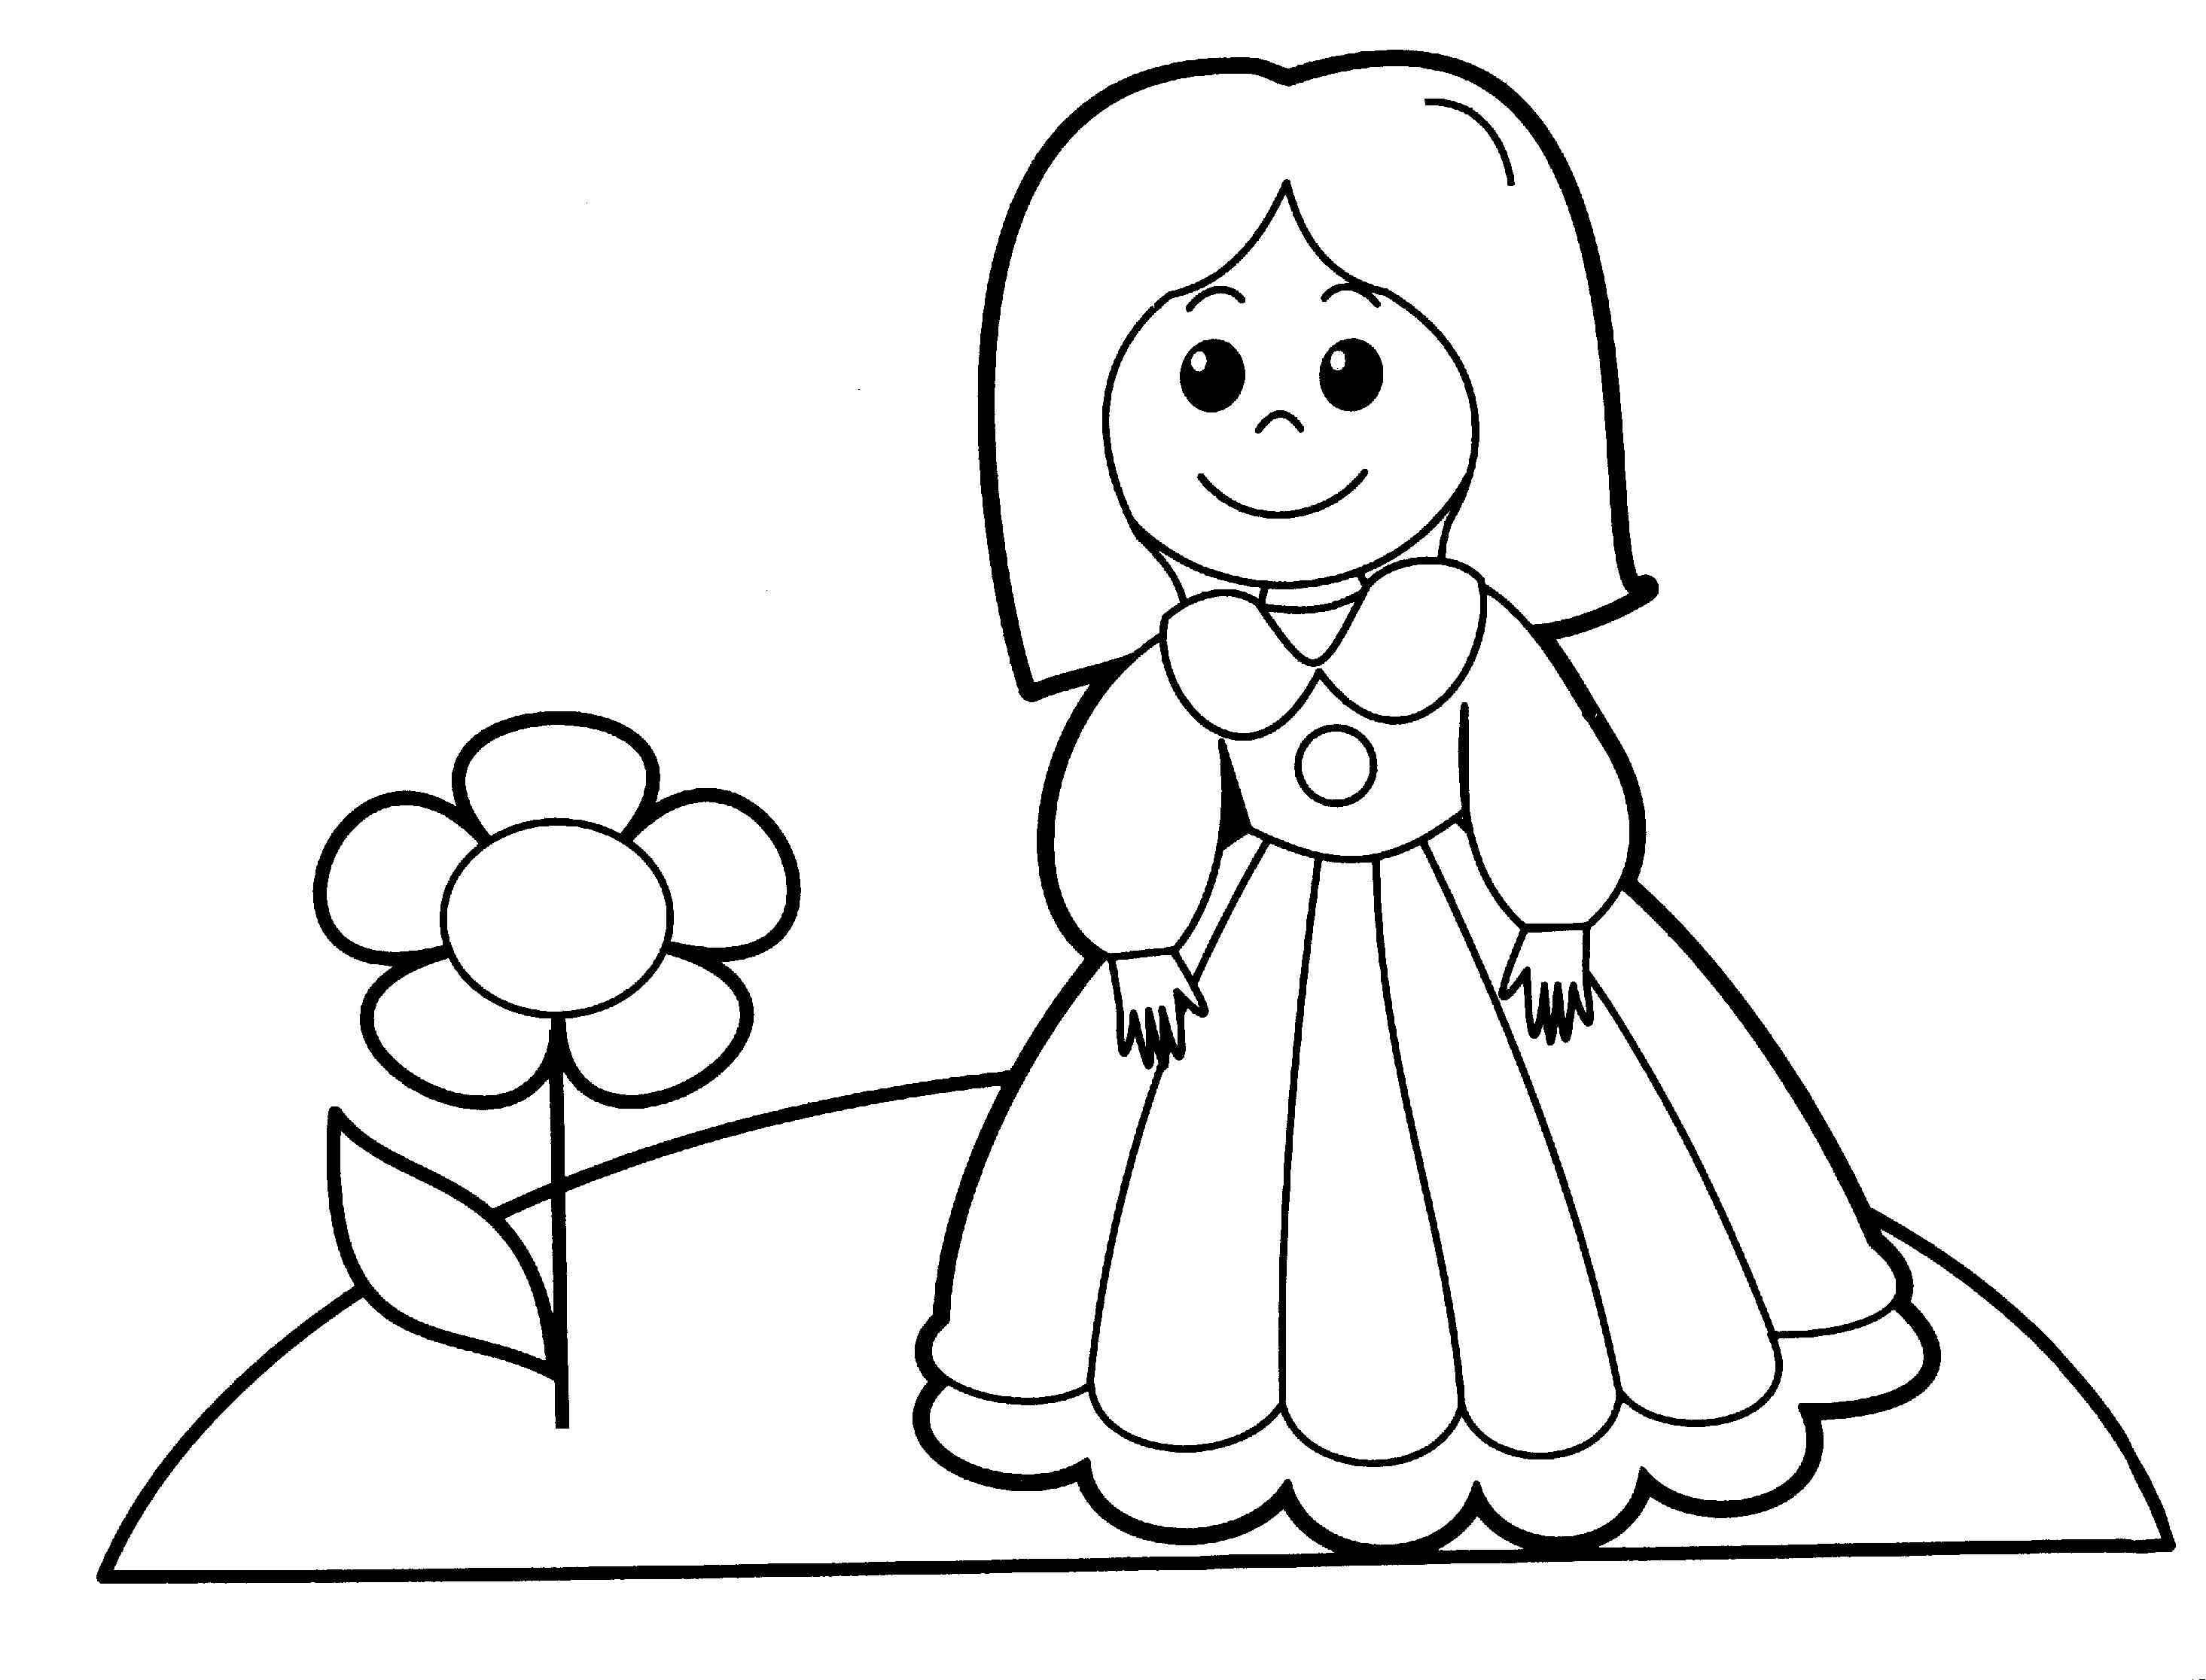 doll coloring page doll coloring pages to download and print for free page coloring doll